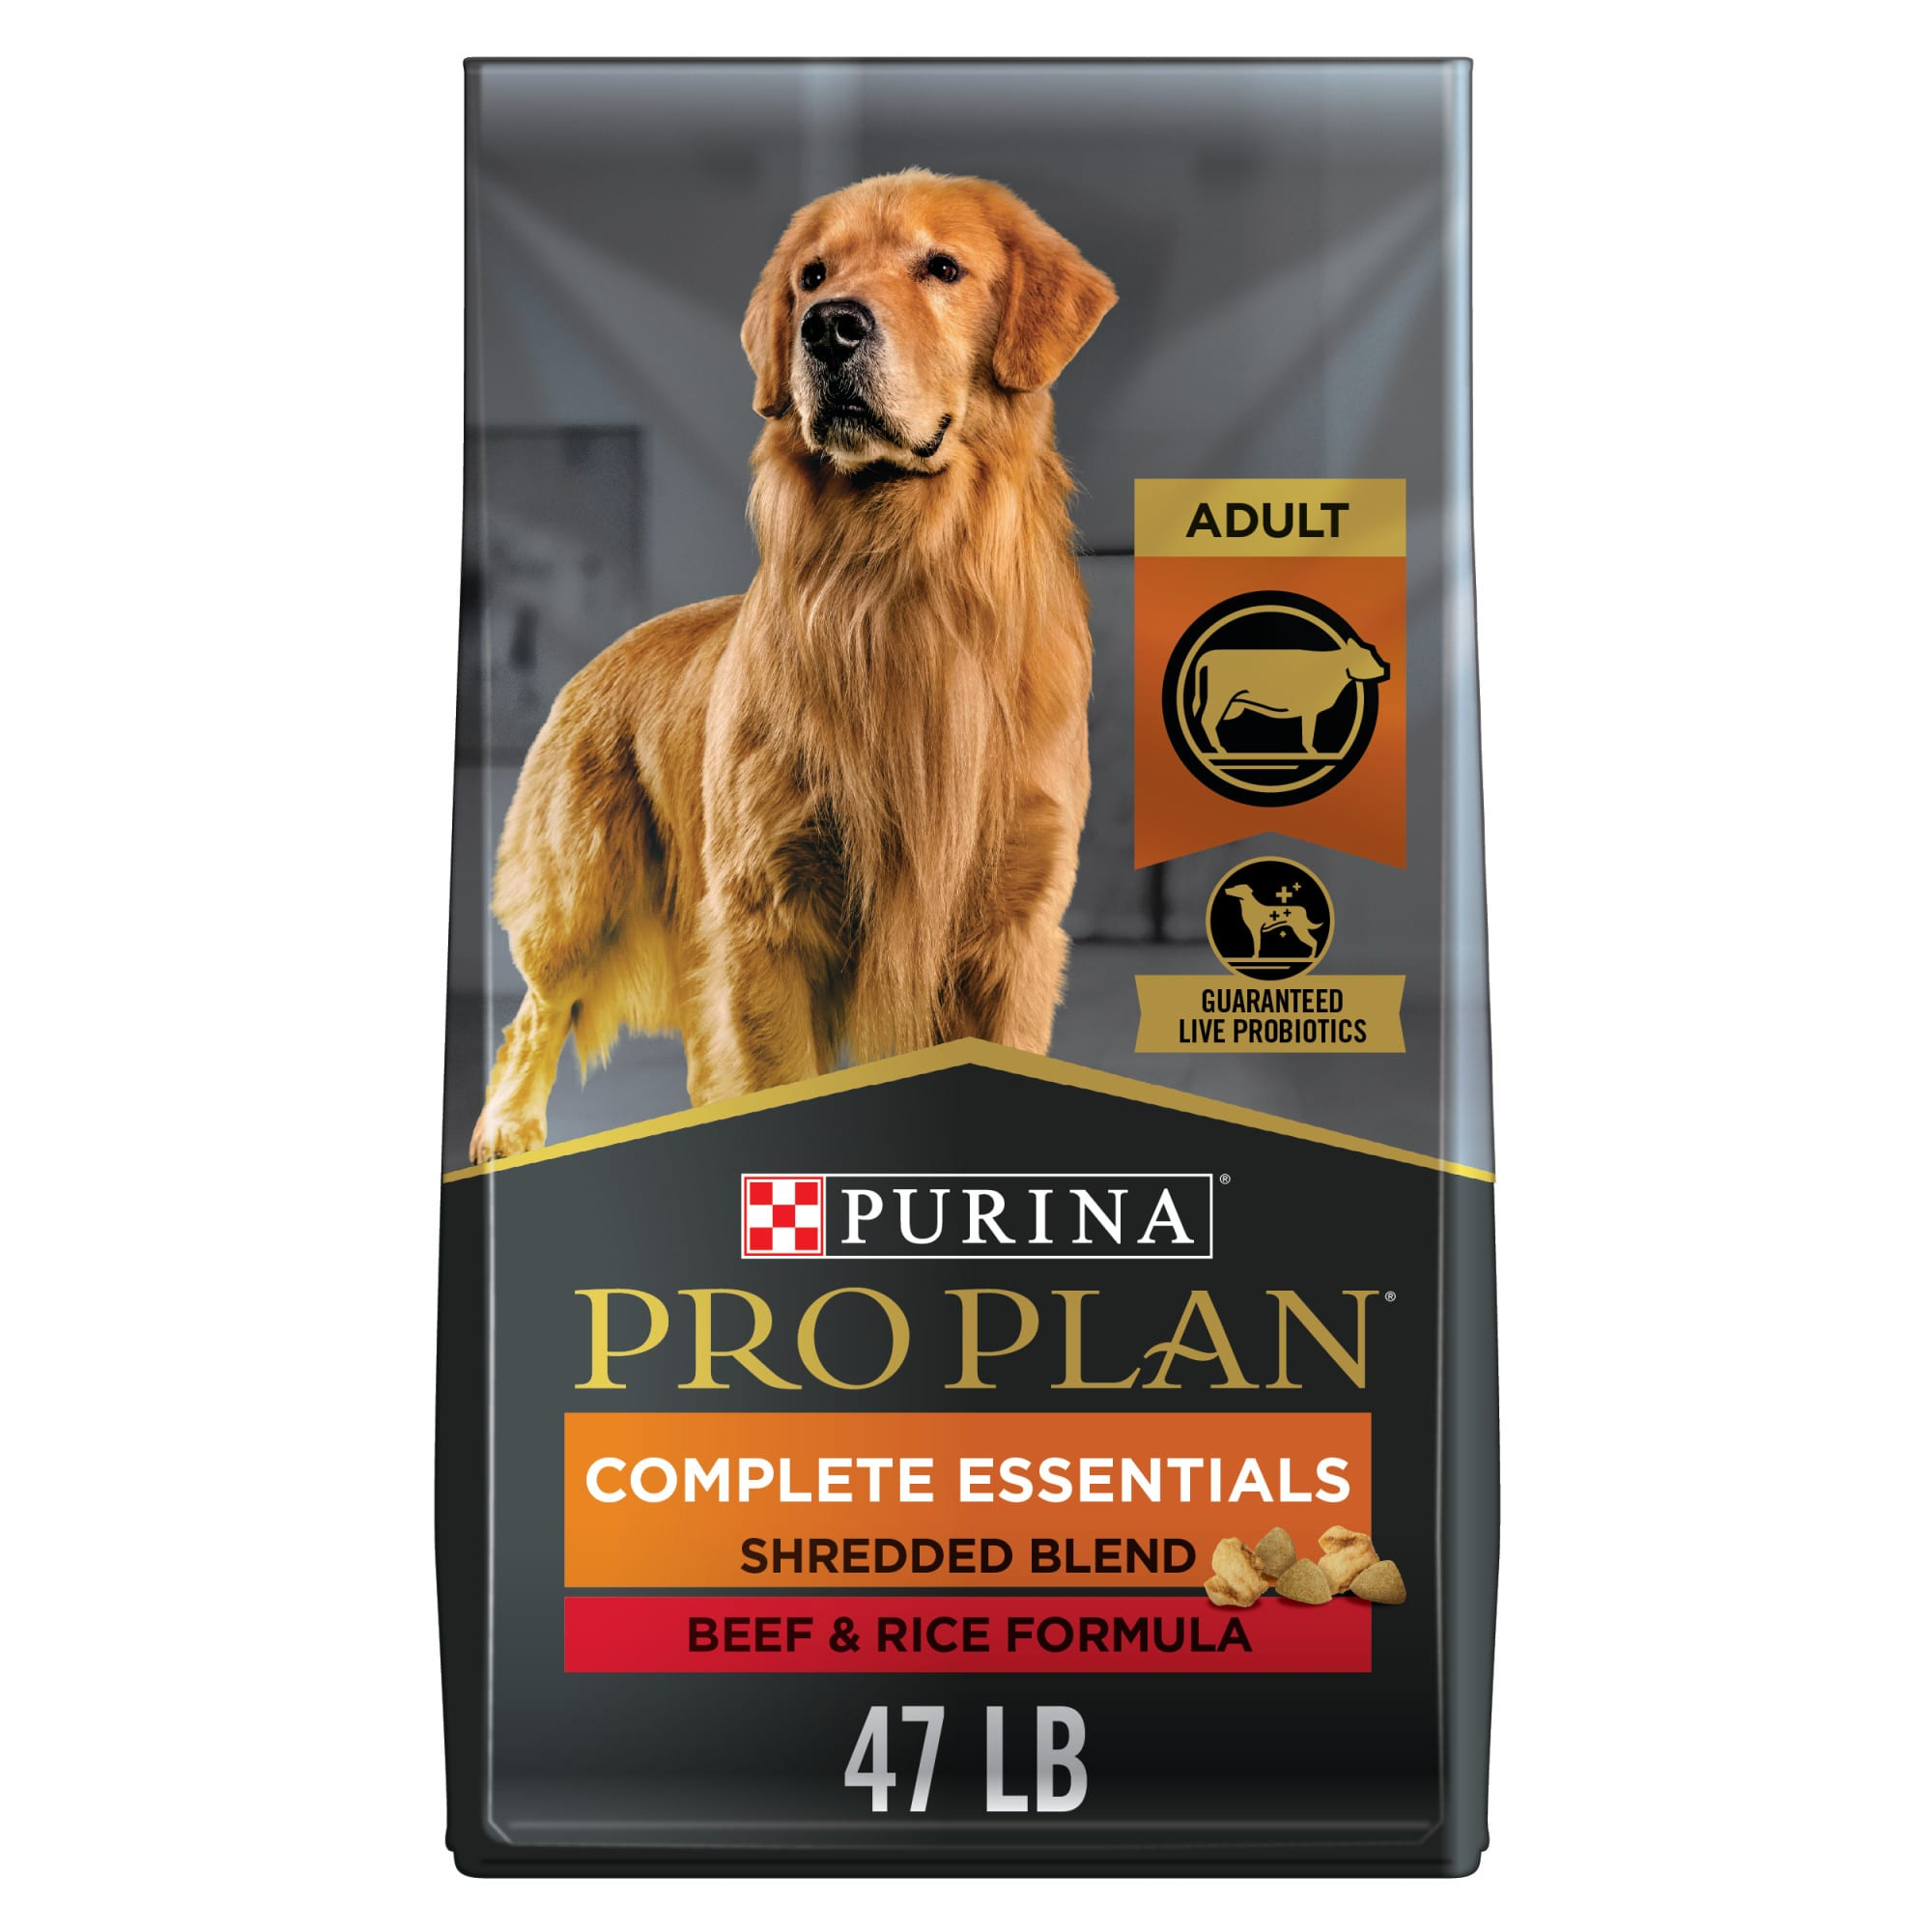 Feed your dog the perfect balance of outstanding nutrition and exceptional taste with Purina Pro Plan Brand Dog Food Shredded Blend Beef & Rice Formula adult dry dog food. We fortify this no chicken dog food with guaranteed live probiotics to support his digestive and immune health. Made with real beef as the first ingredient and rice, an excellent source of carbohydrates for energy, this high-protein dog food doesn\\\'t compromise on nutrition or flavor. Our tasty formula combines hard dog food kibble with tender shredded bites for a unique texture dogs love. Providing 100% complete and balanced nutrition for adult dogs, this adult dog food offers an optimal protein-to-fat ratio to help your dog maintain an ideal body condition, no matter what adventures his day brings. Look to our full line of Purina Pro Plan dog food products, including DEVELOPMENT, ESSENTIALS, SPECIALIZED, SPORT and SENIOR, to find a targeted formula that\\\'s ideal for every member of your four-legged family.